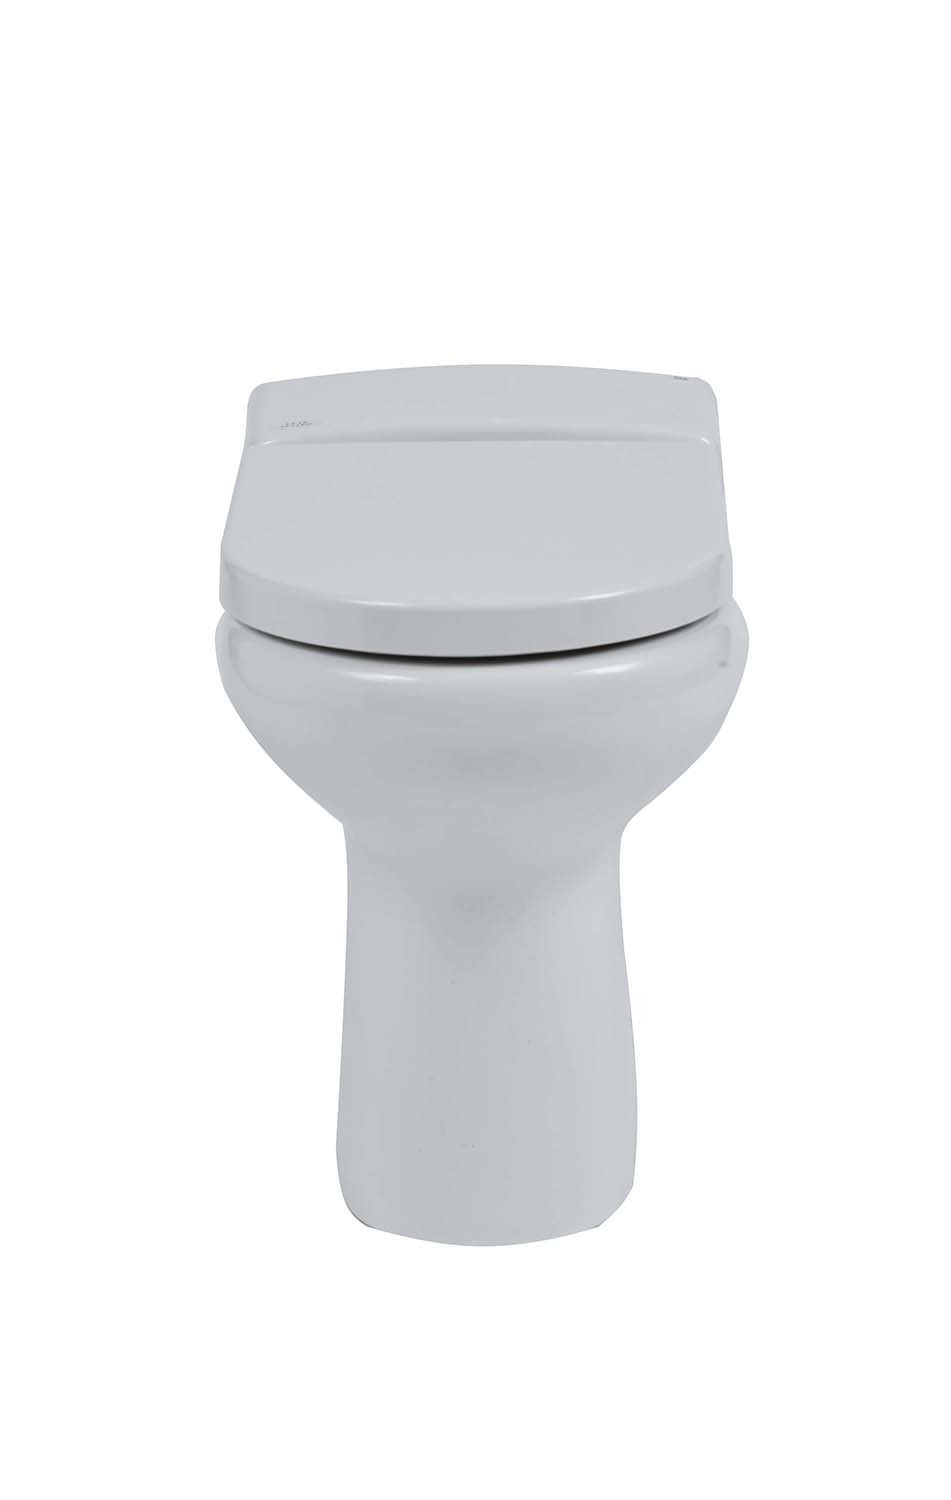 Compact Rimless Back-to-Wall Toilet with Soft-Close Seat